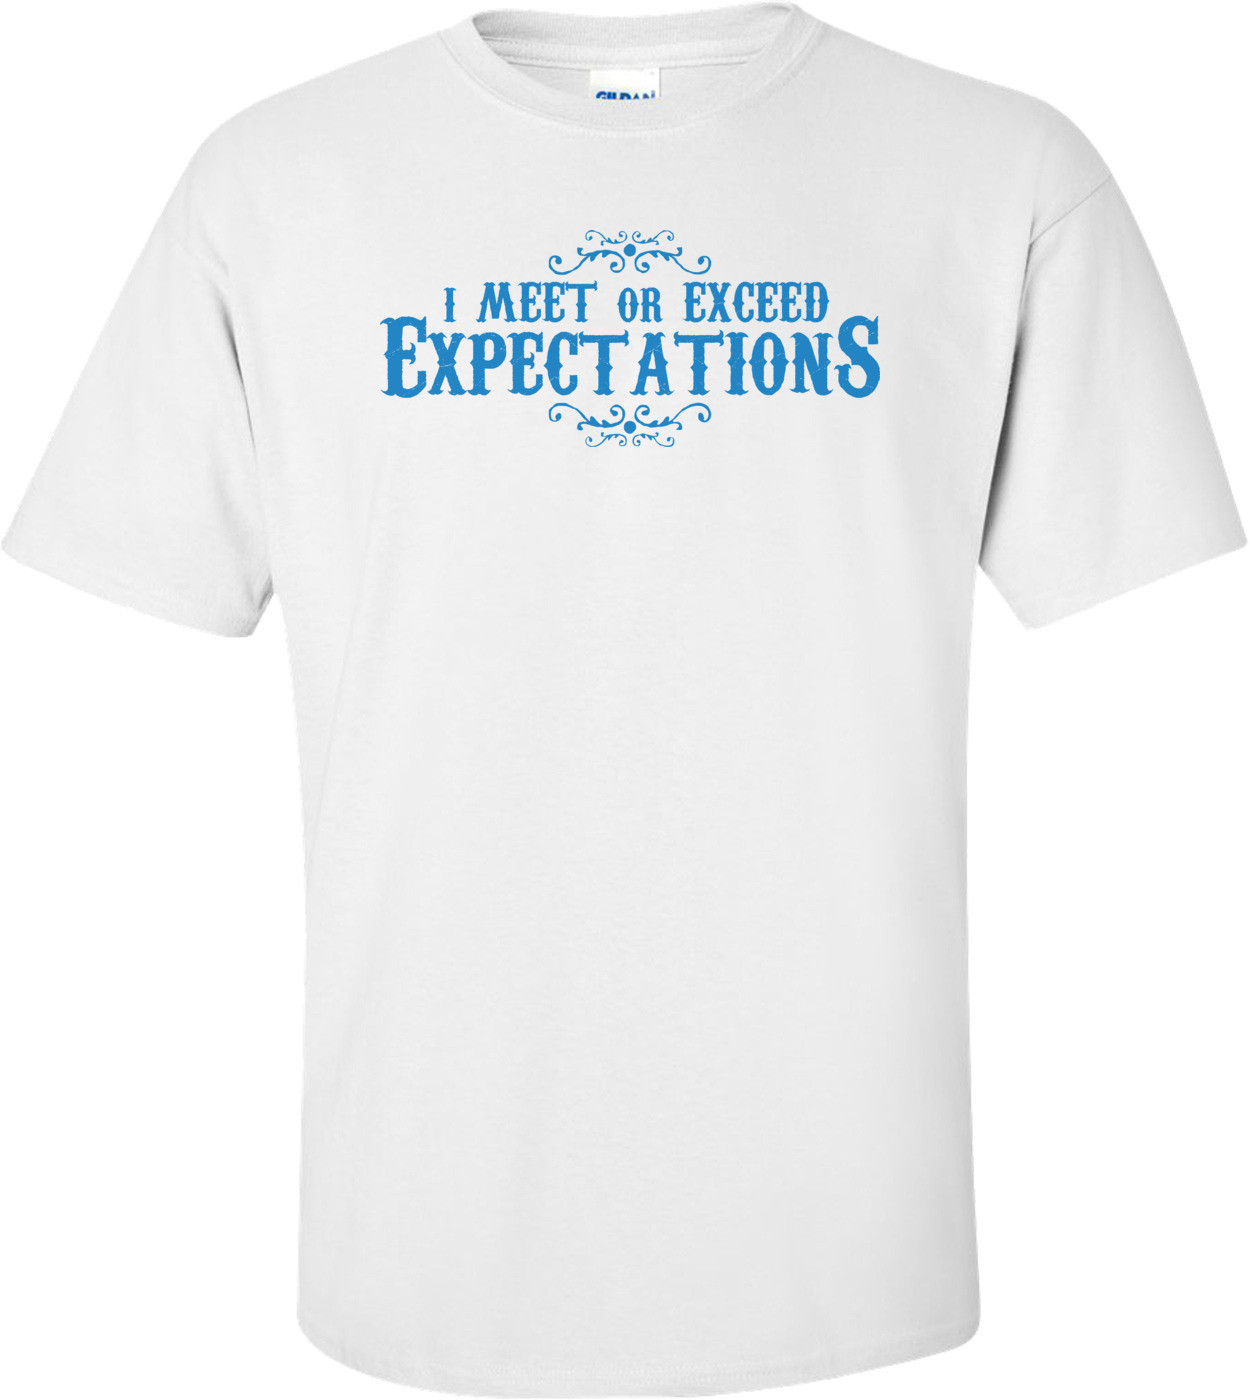 I Meet Or Exceed Expectations